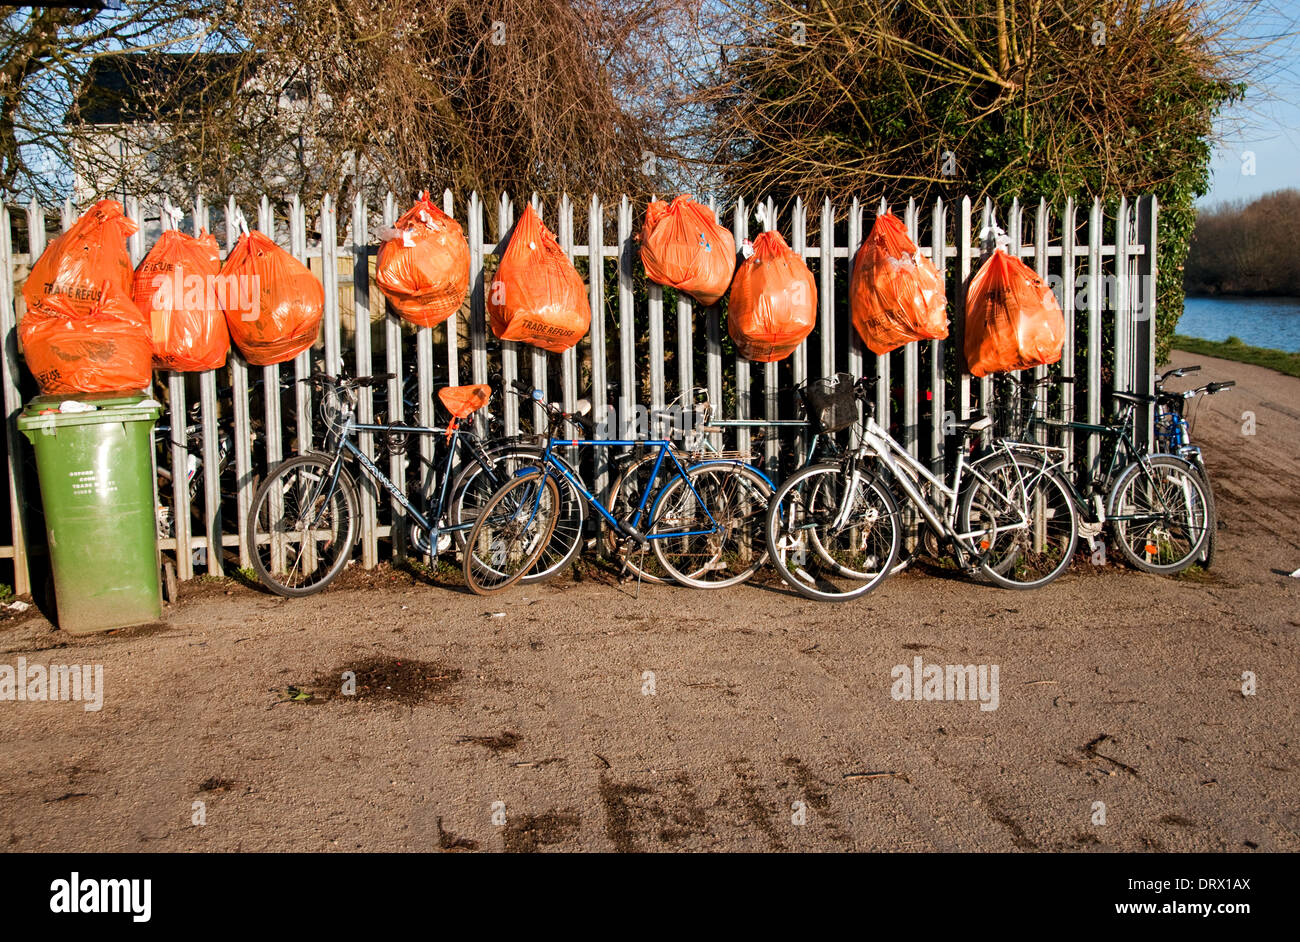 Rubbish Bags and Bicycles - Stock Image